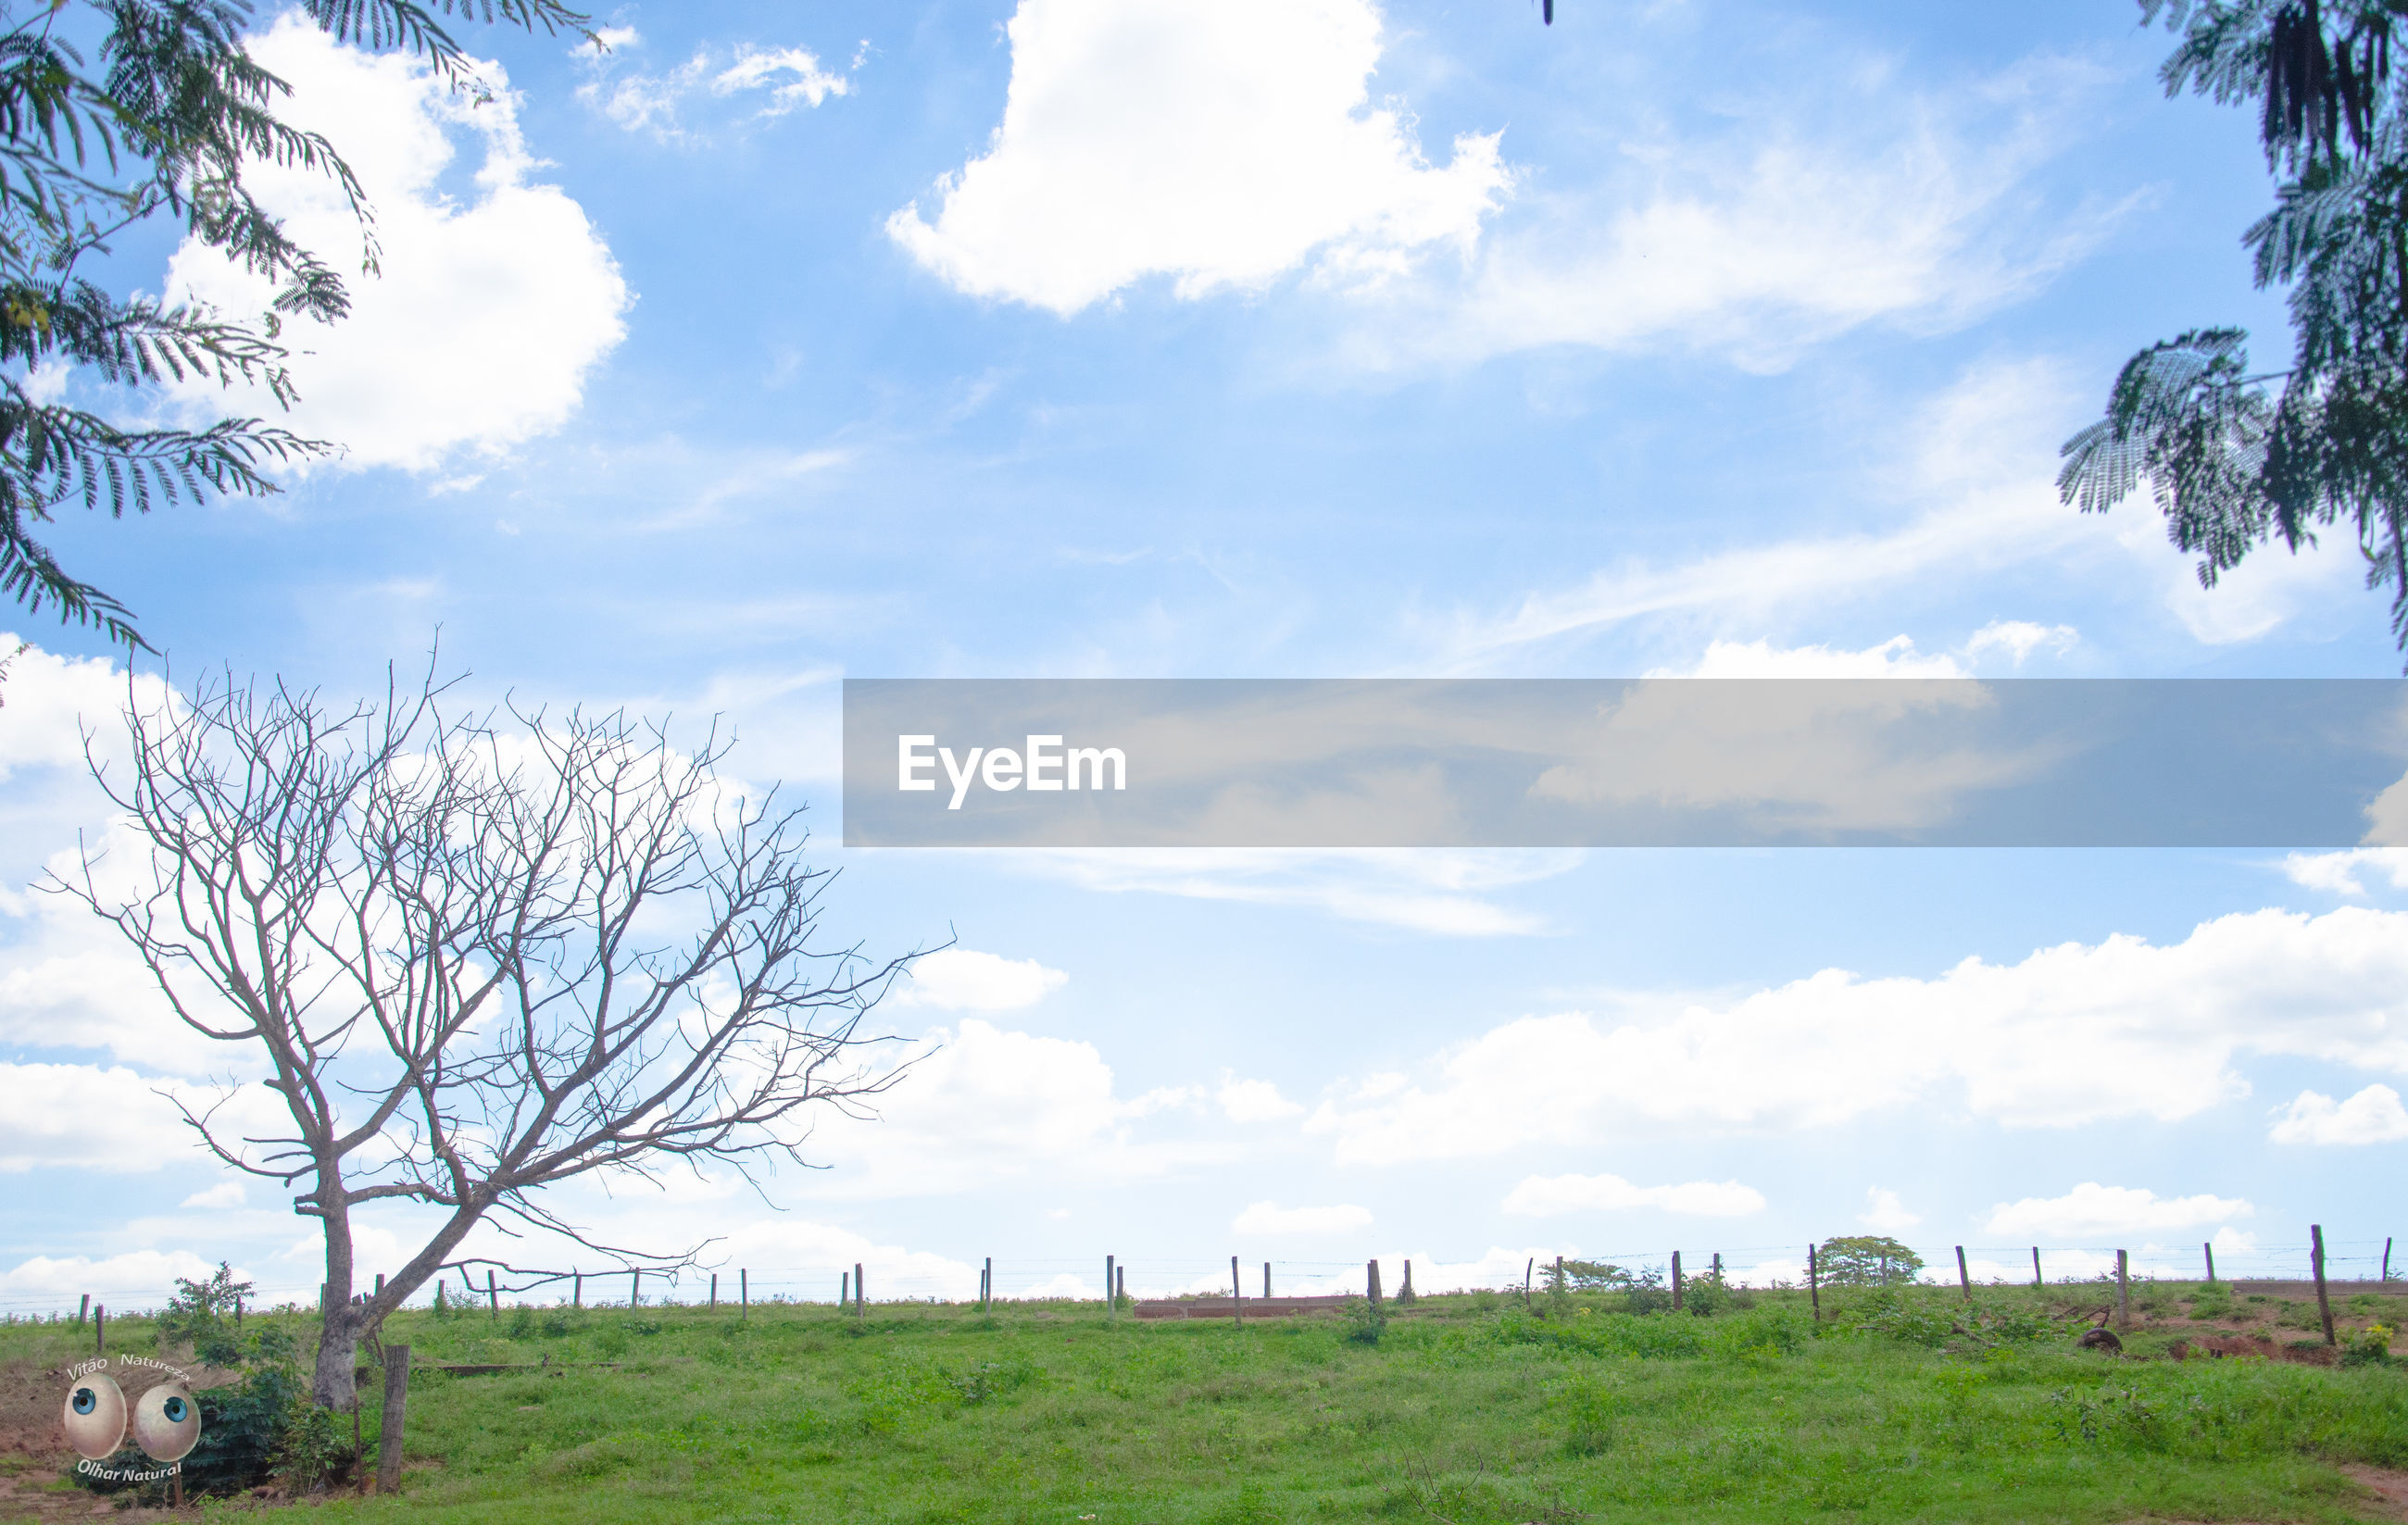 sky, tree, cloud - sky, grass, field, tranquility, landscape, tranquil scene, cloud, scenics, beauty in nature, nature, growth, cloudy, rural scene, grassy, branch, day, blue, horizon over land